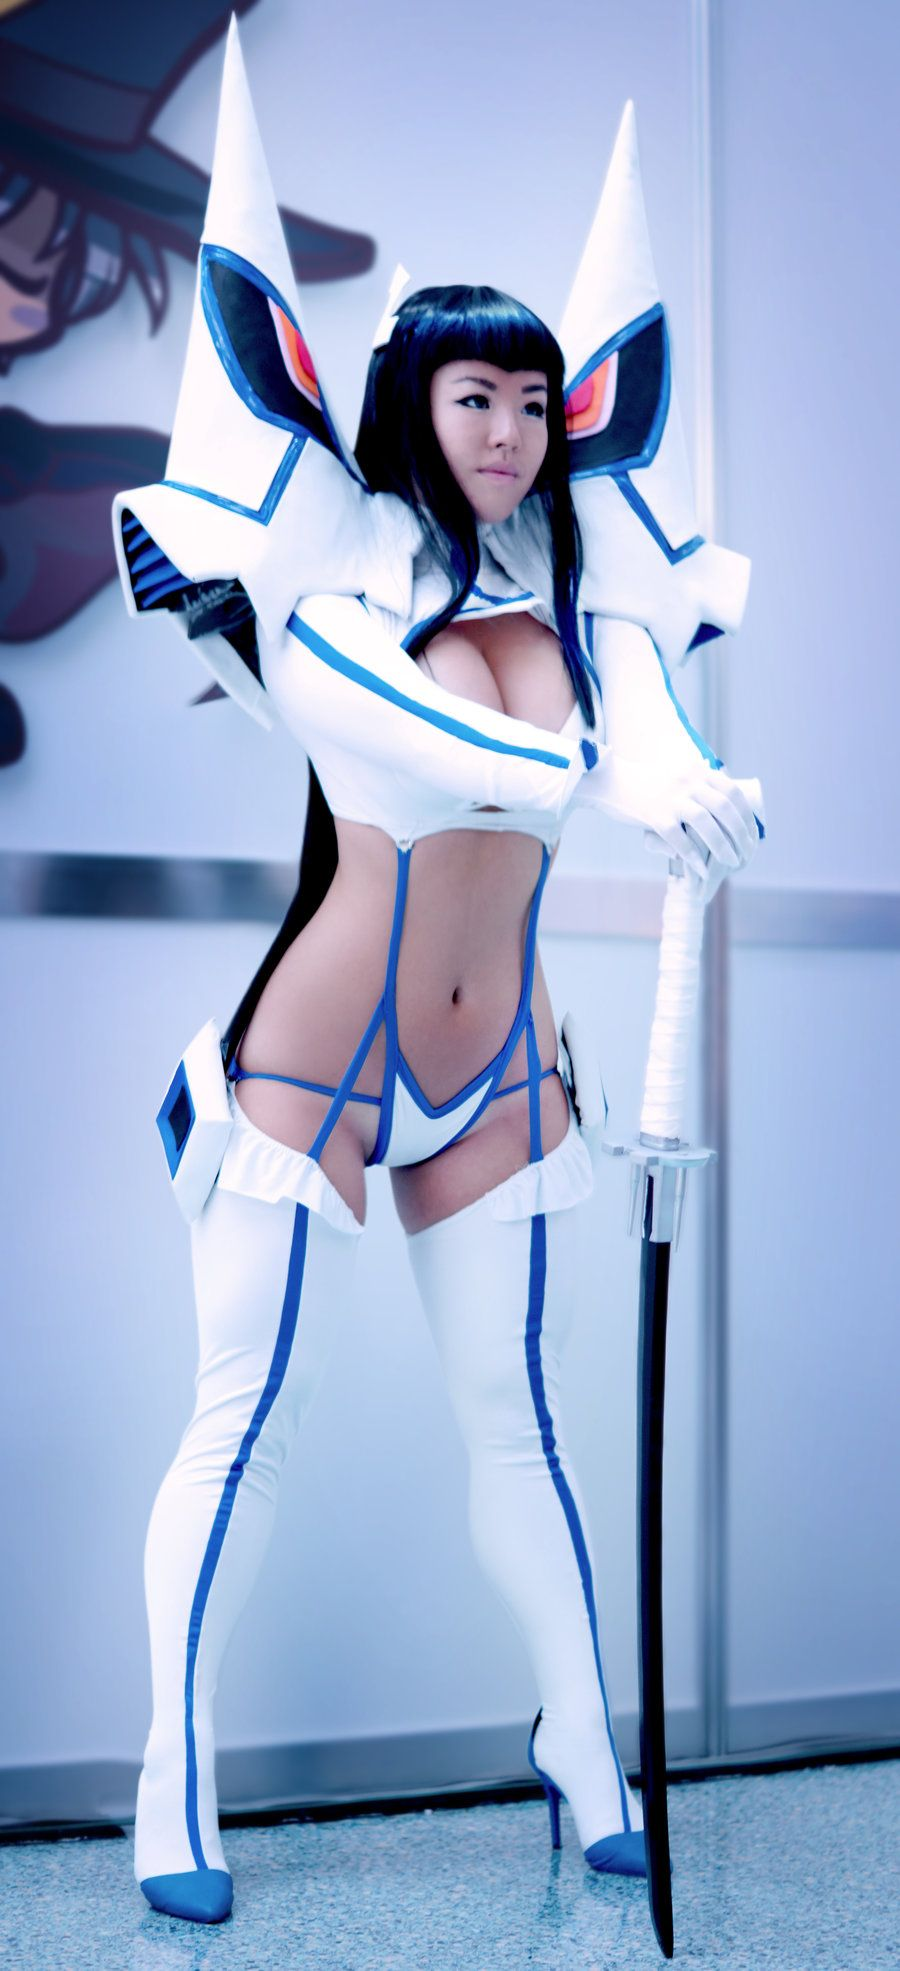 La blue girl cosplay